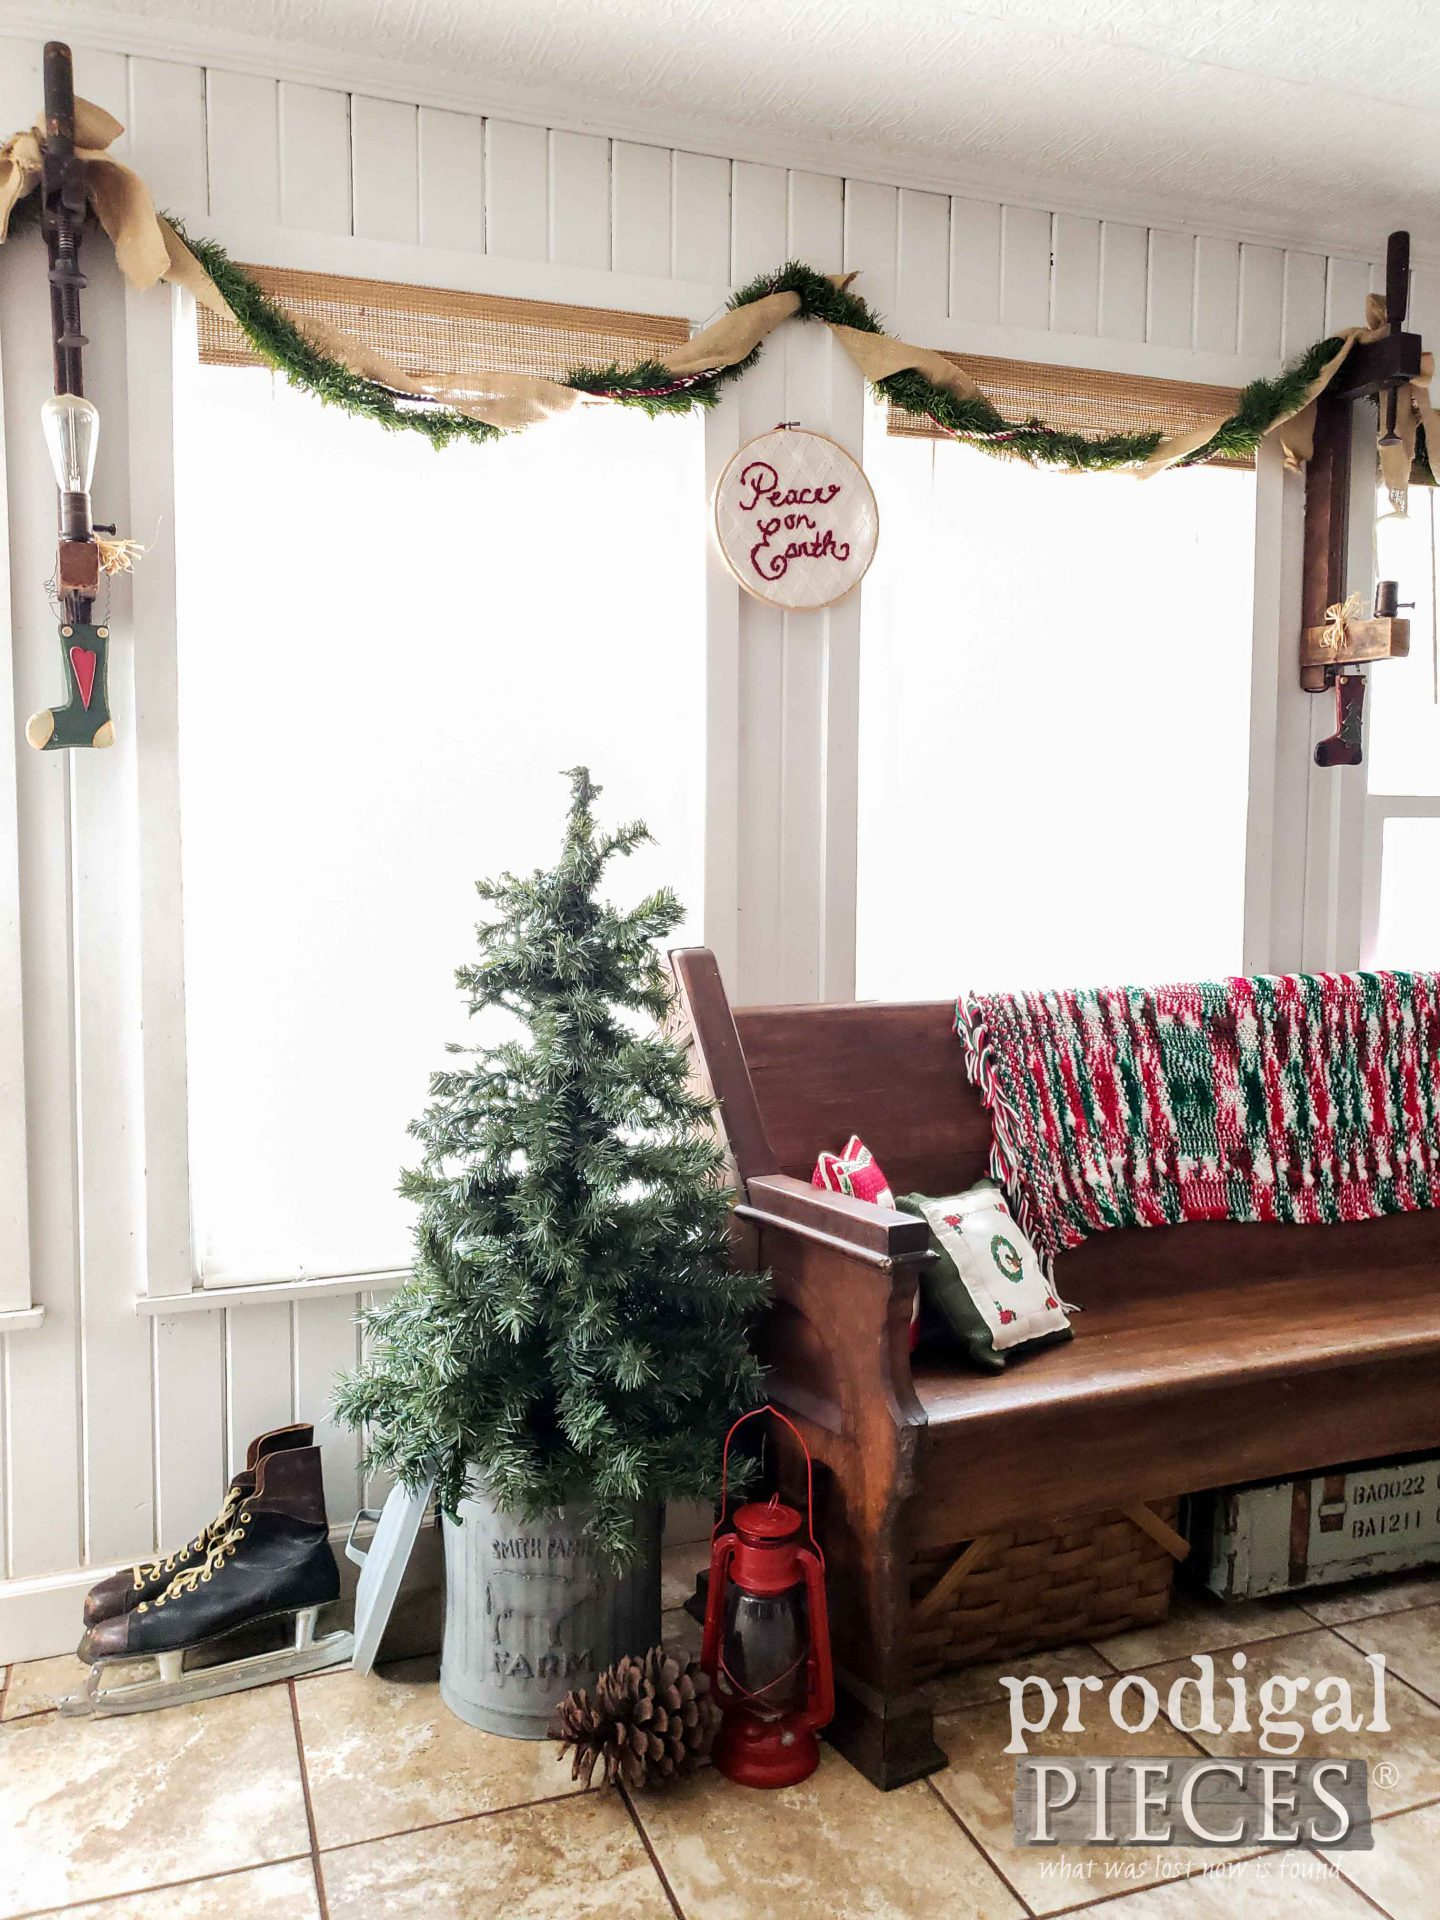 Simple Farmhouse Christmas with DIY Embossed Trash Can for Christmas Tree by Larissa of Prodigal Pieces | prodigalpieces.com #prodigalpieces #christmas #home #homedecor #farmhouse #diy